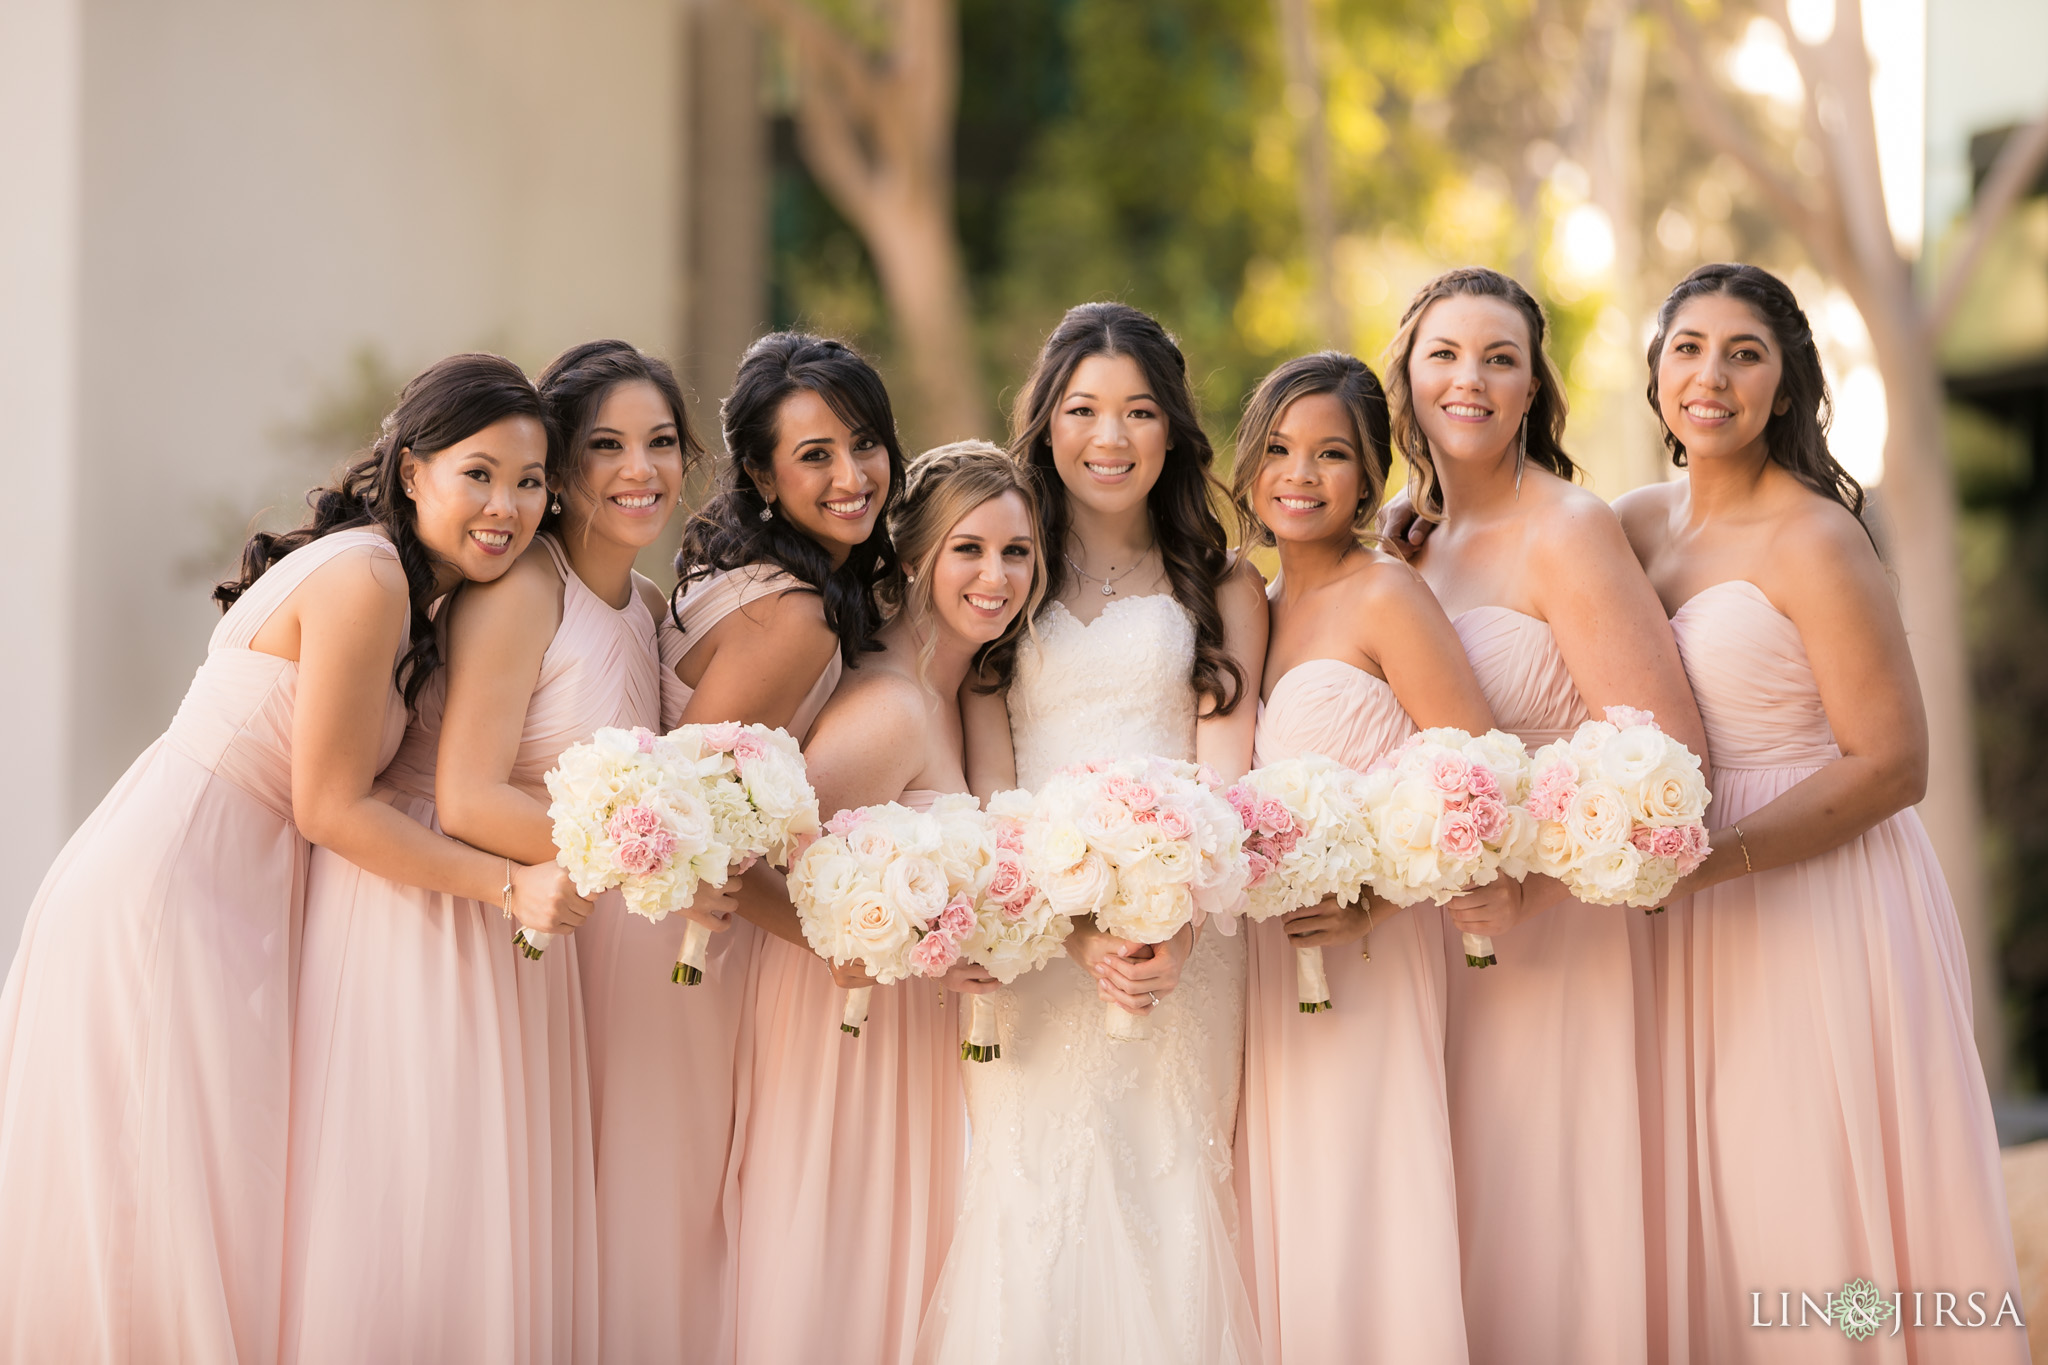 16 hilton costa mesa bridesmaids wedding photography